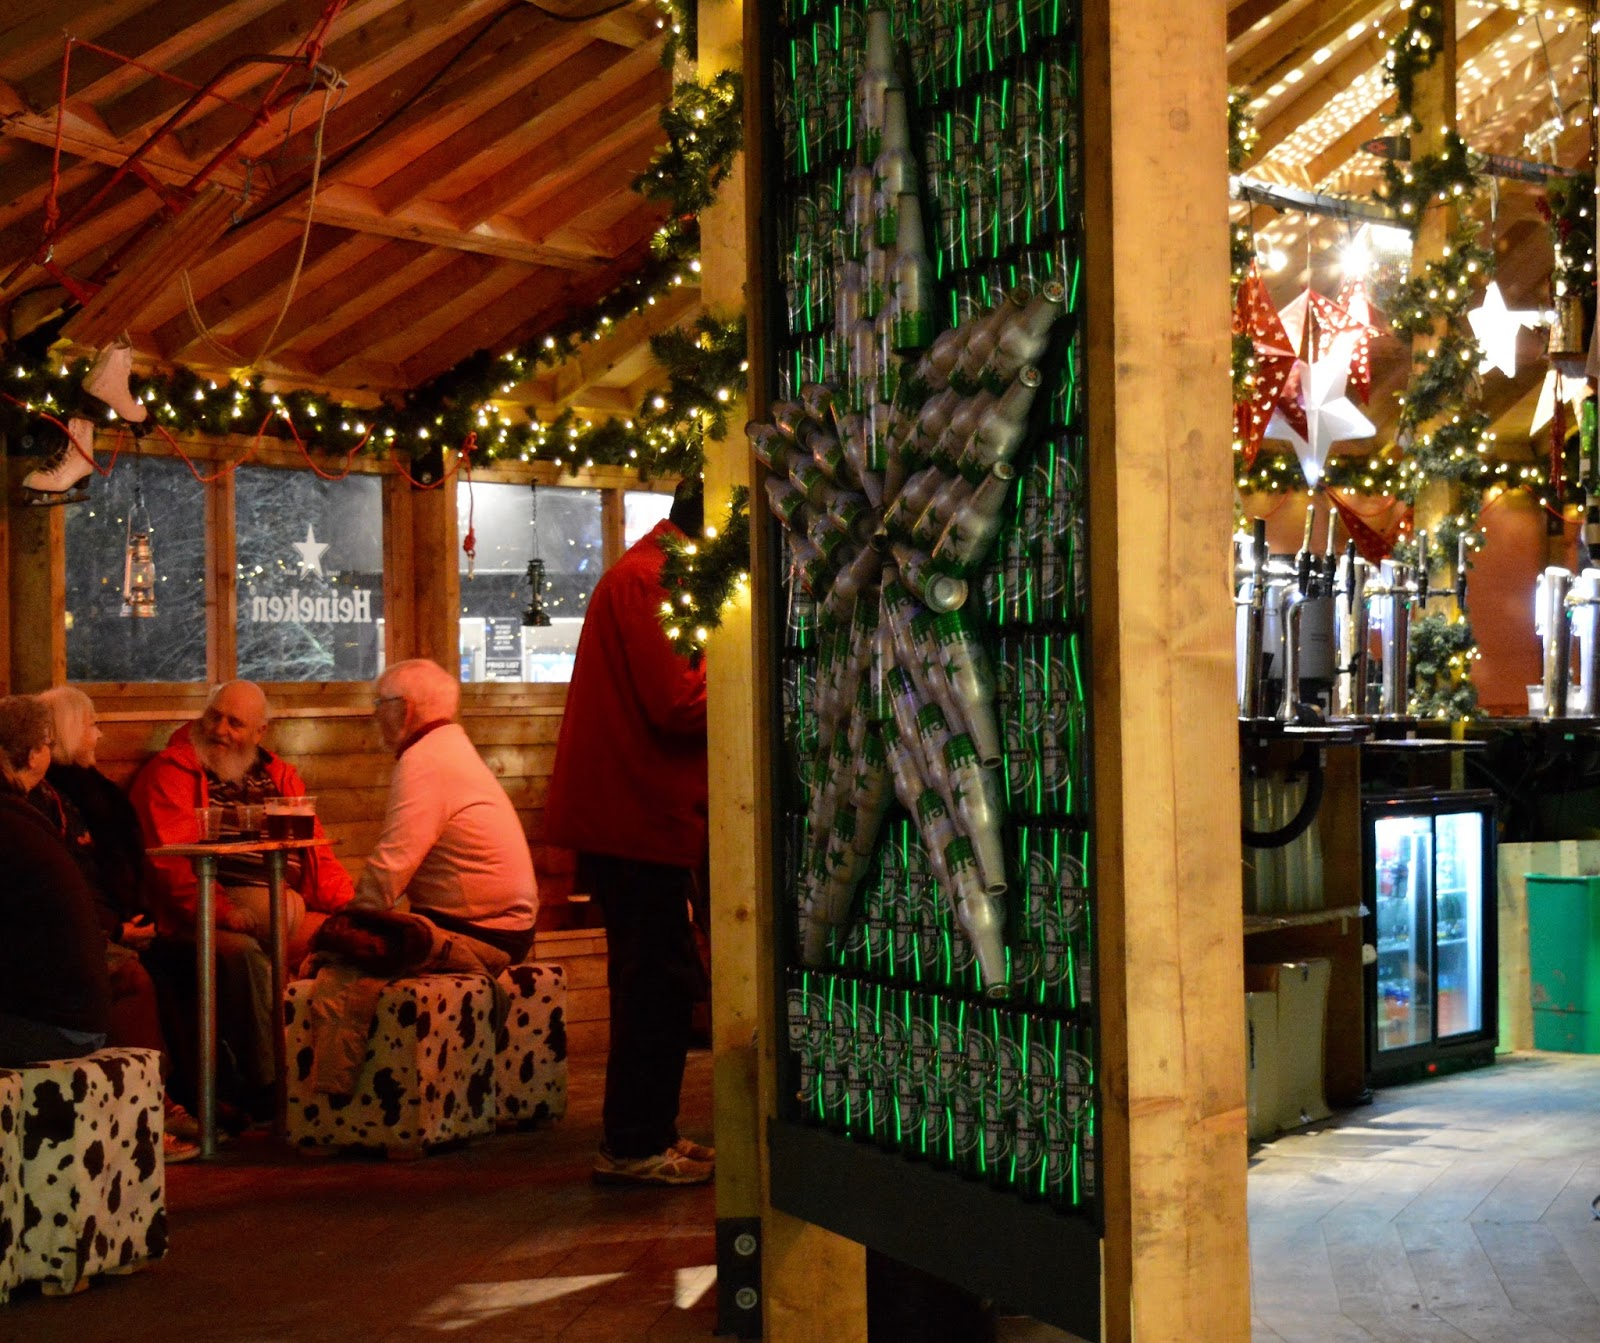 10 Reasons to Visit Edinburgh in December - Scandanavian bar near ice rink